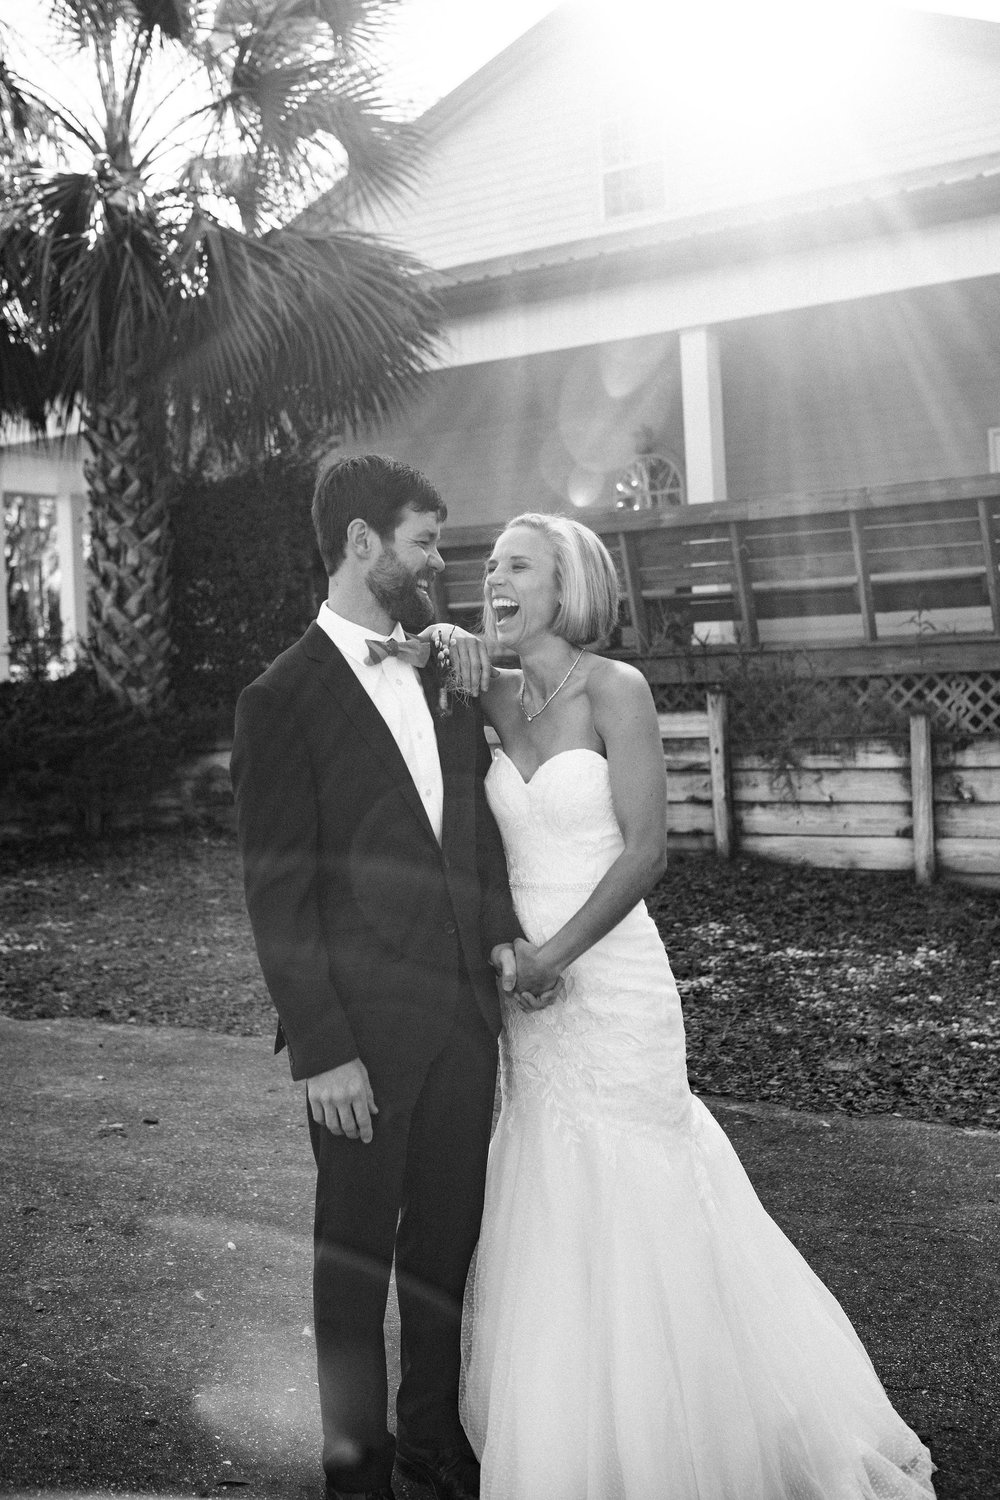 JesseandLex_190105_Brit_Evan_BrideGroom_102.jpg